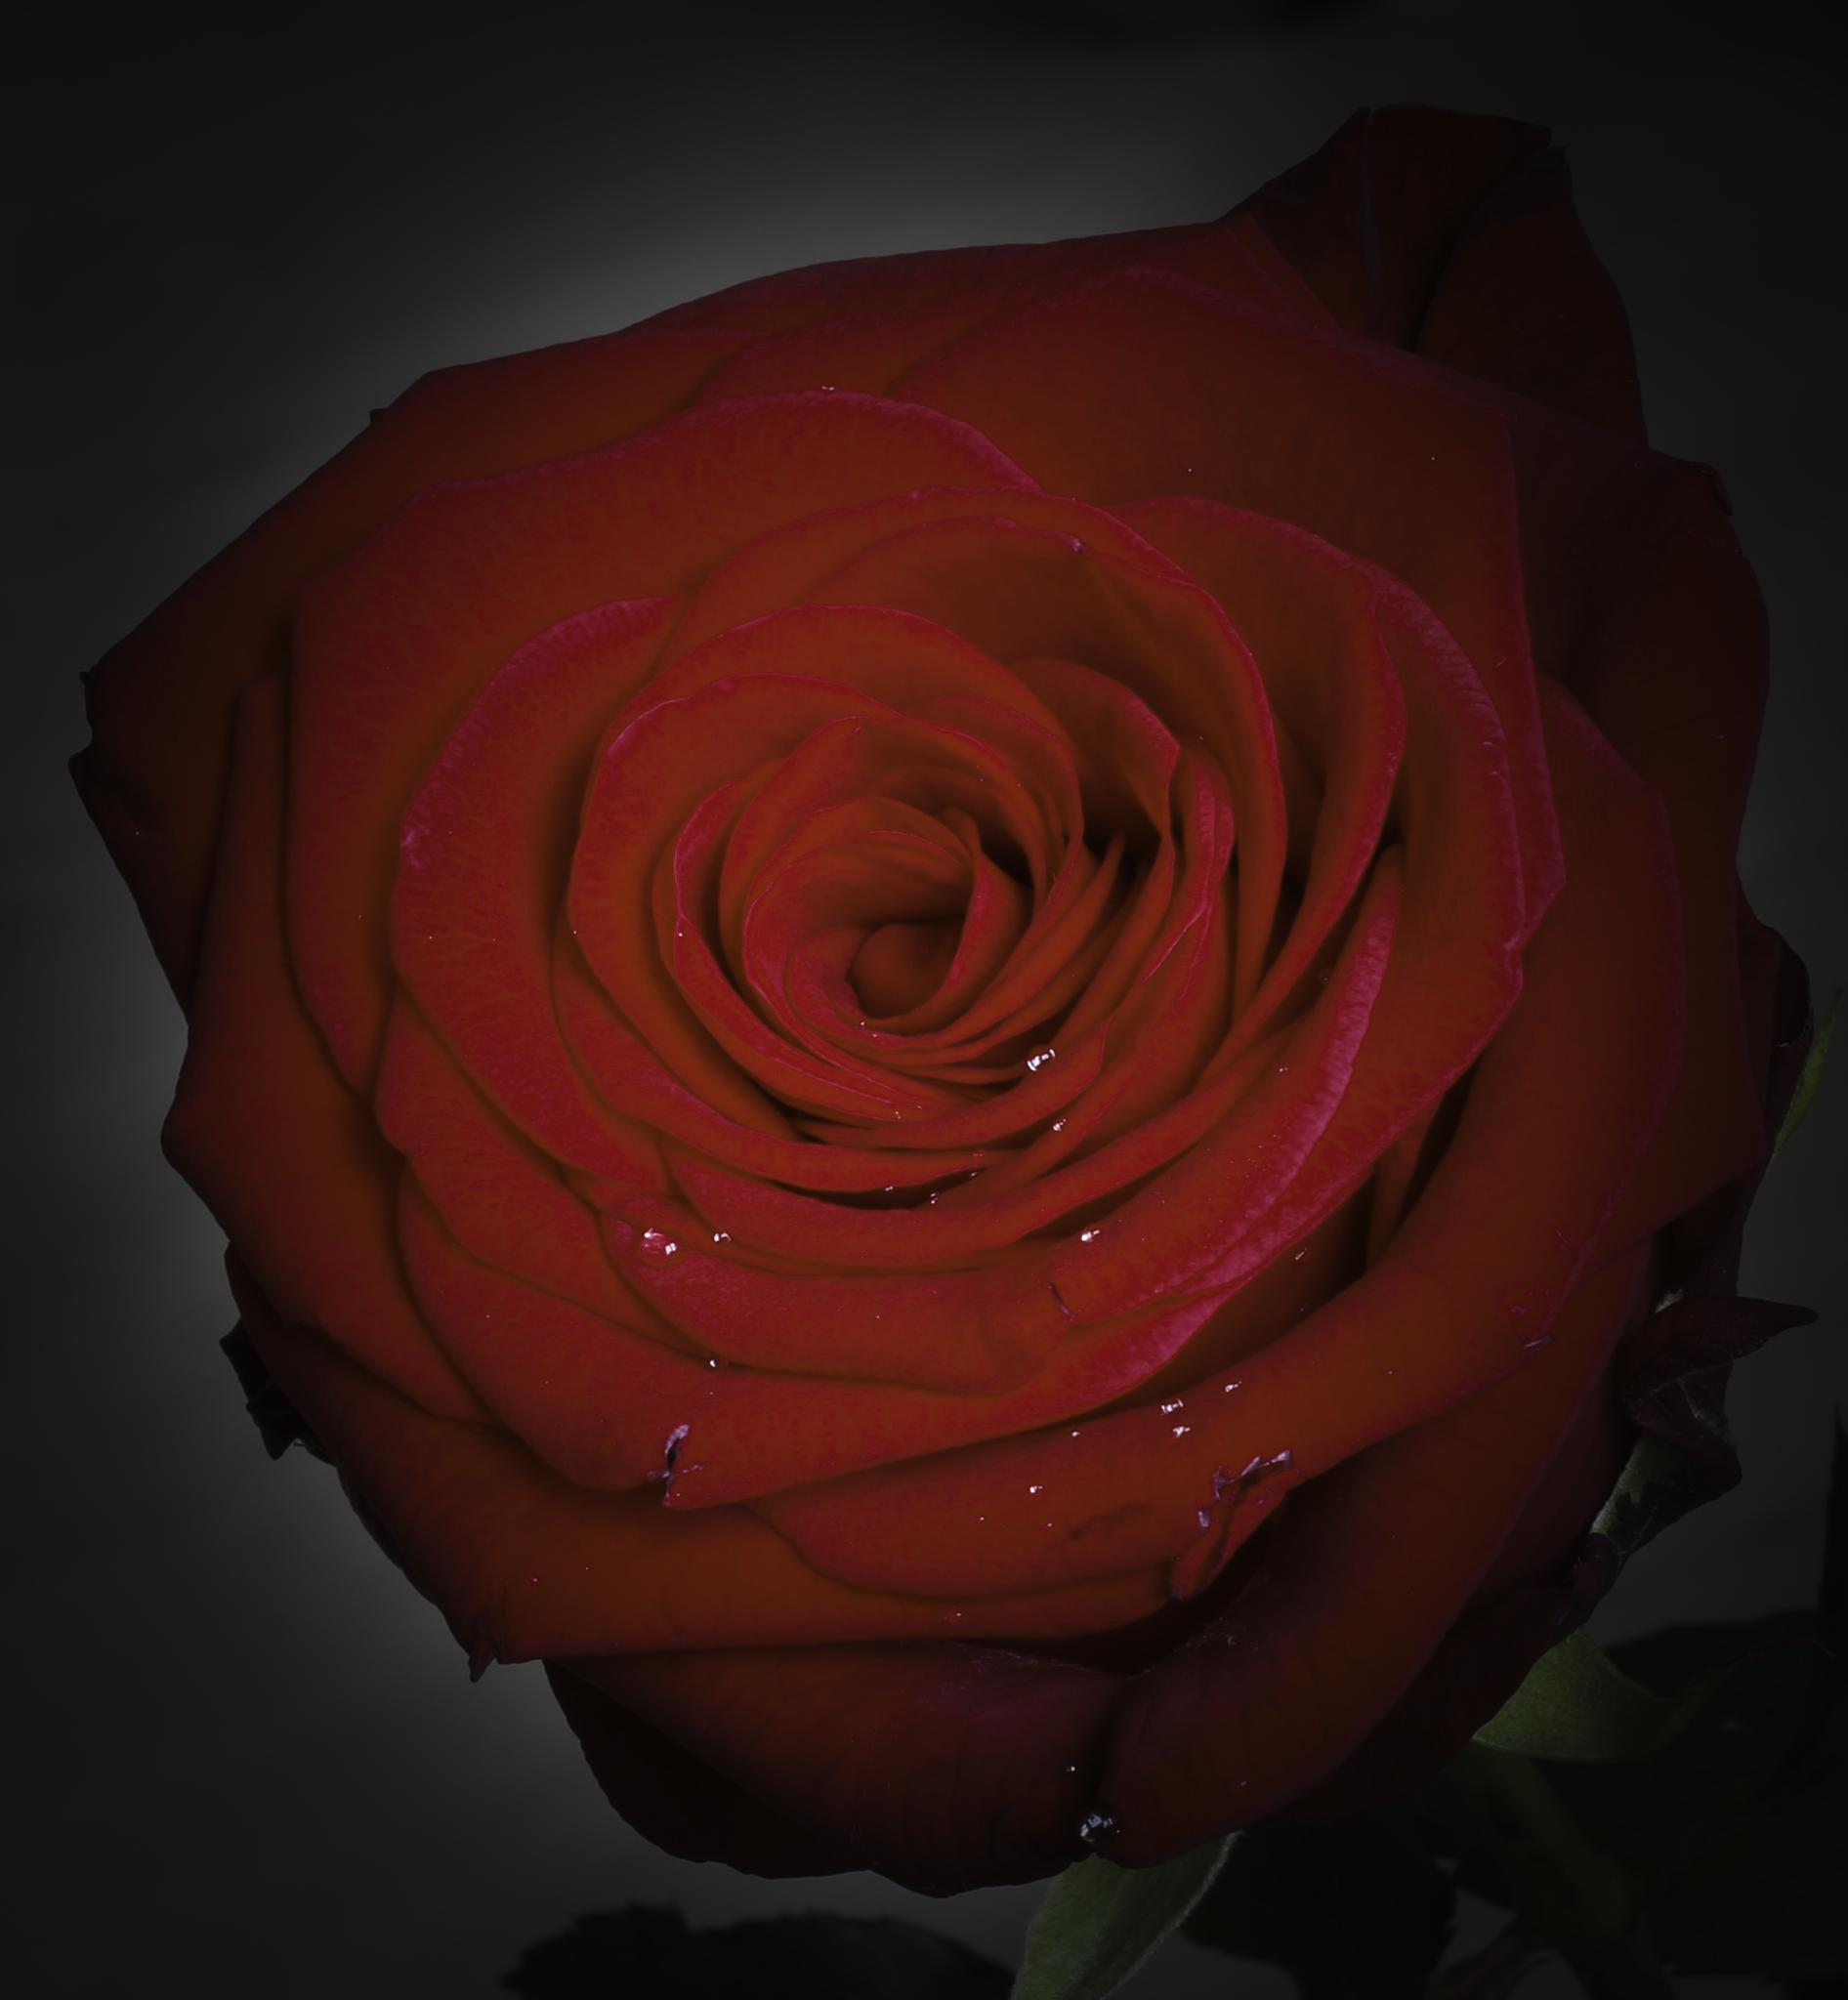 Rose of the Day by Olle Möller